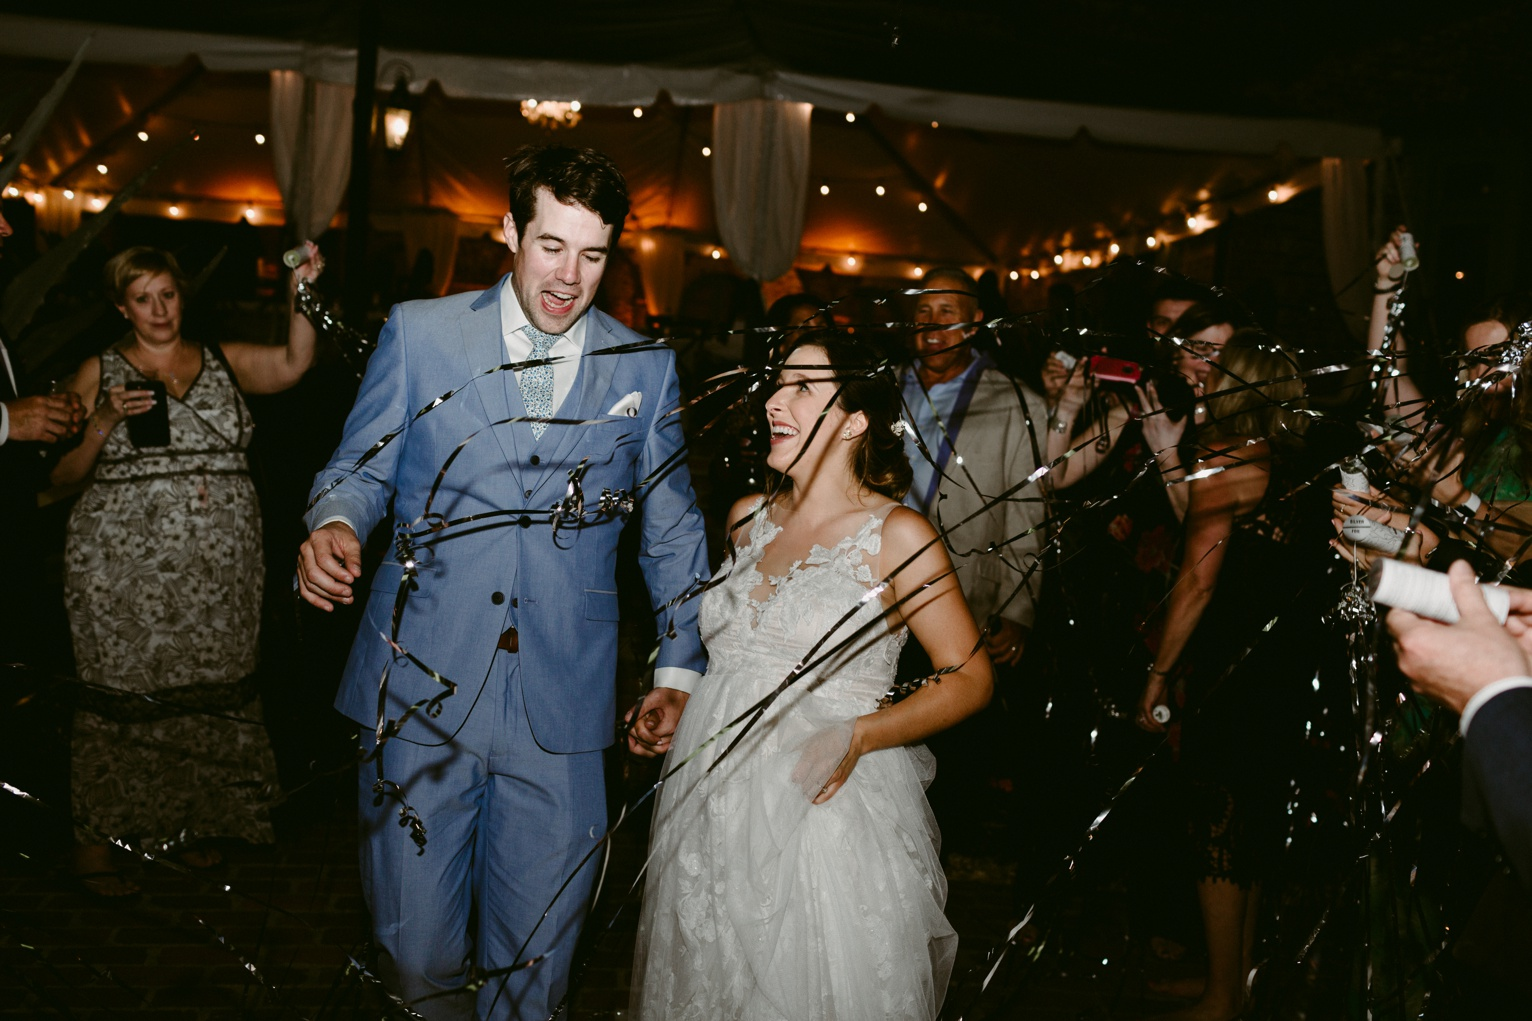 Dreamtownco.com_blog_Nick&Lindsay_Wedding_0180.jpg